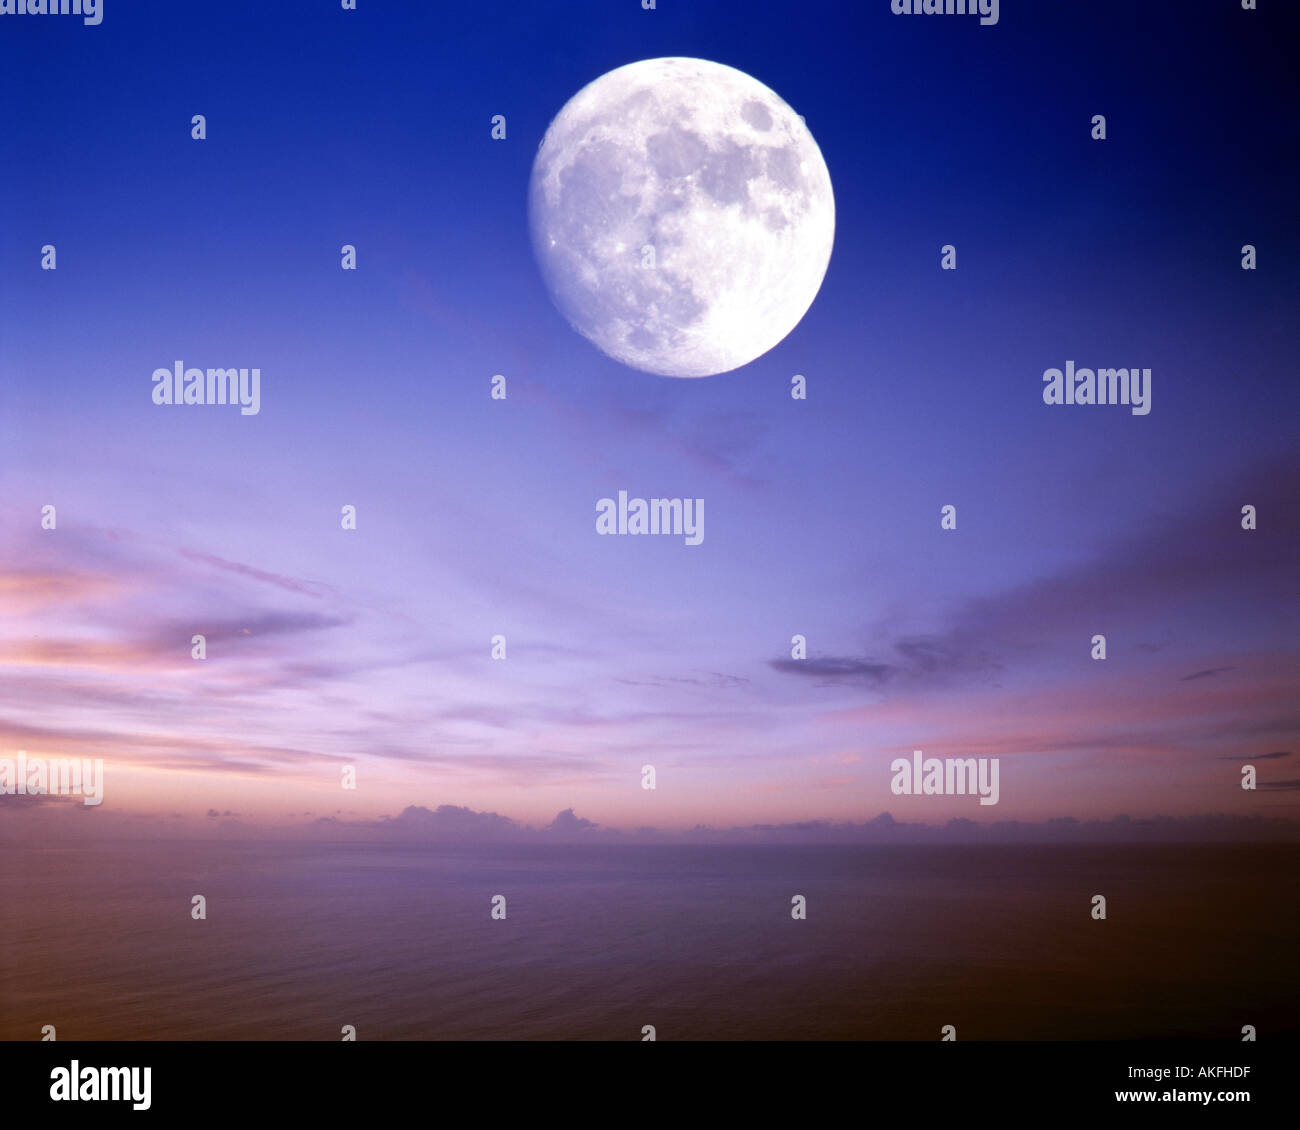 IE - CO.DONEGAL: Atlantic Moon - Stock Image